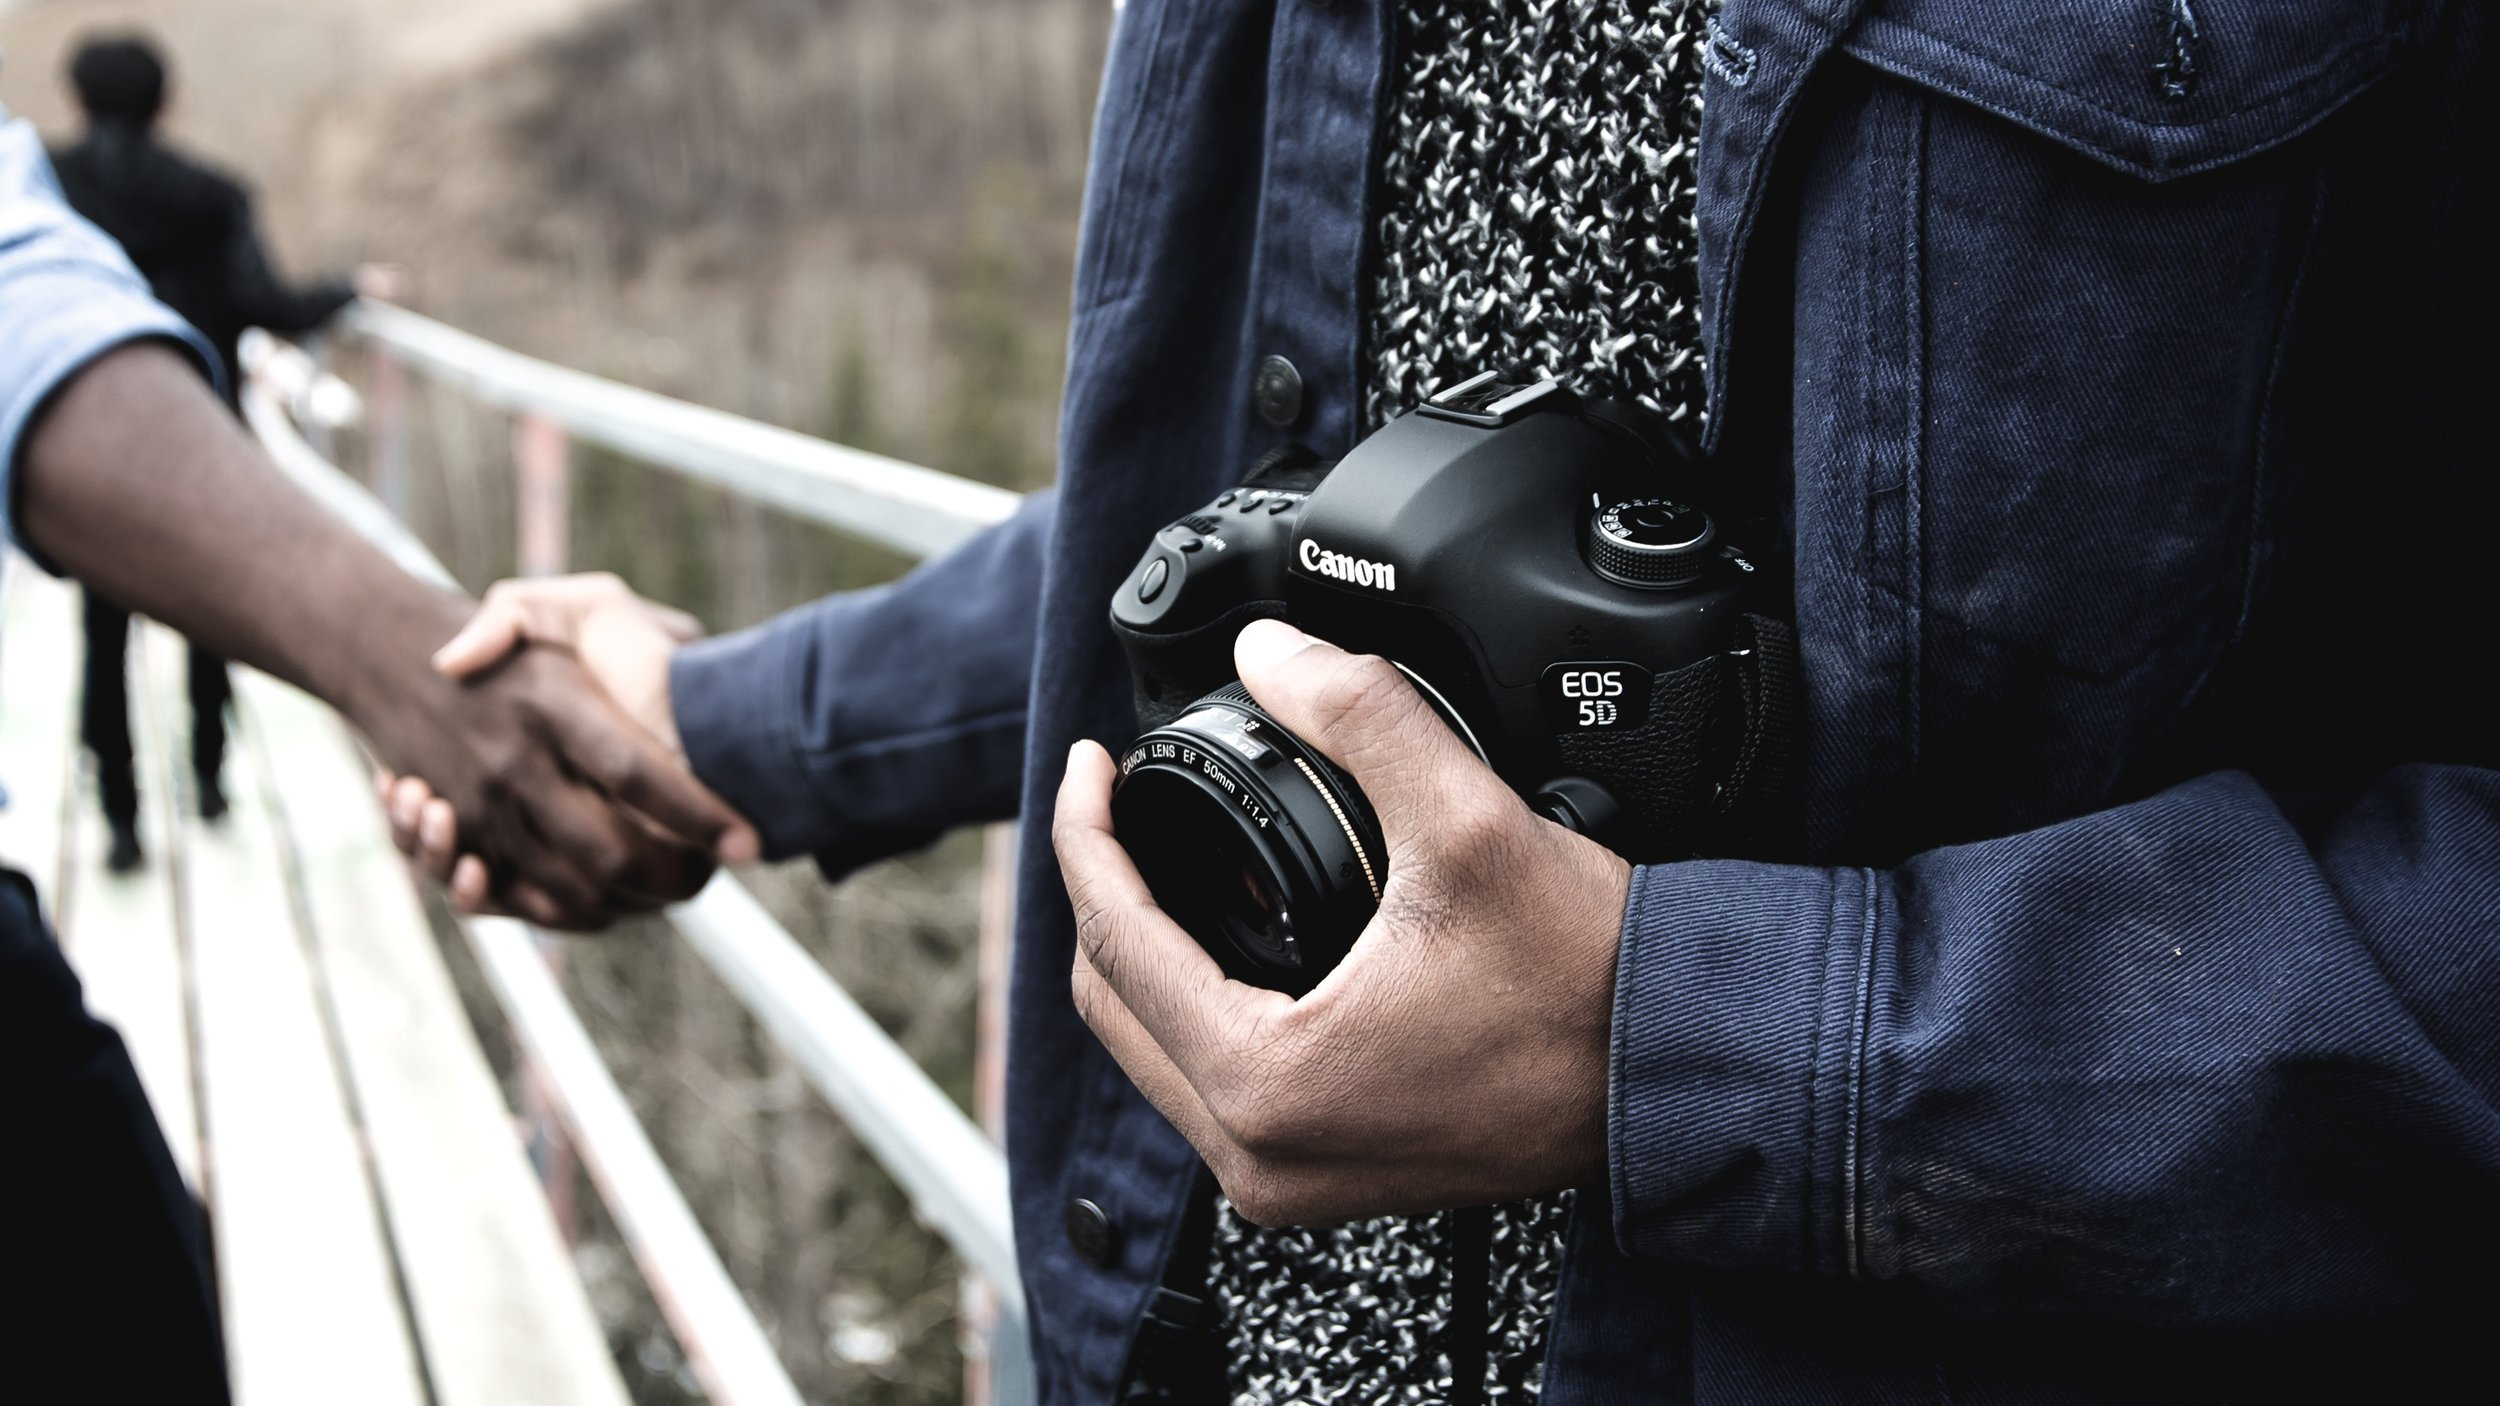 What are photography ethics? -